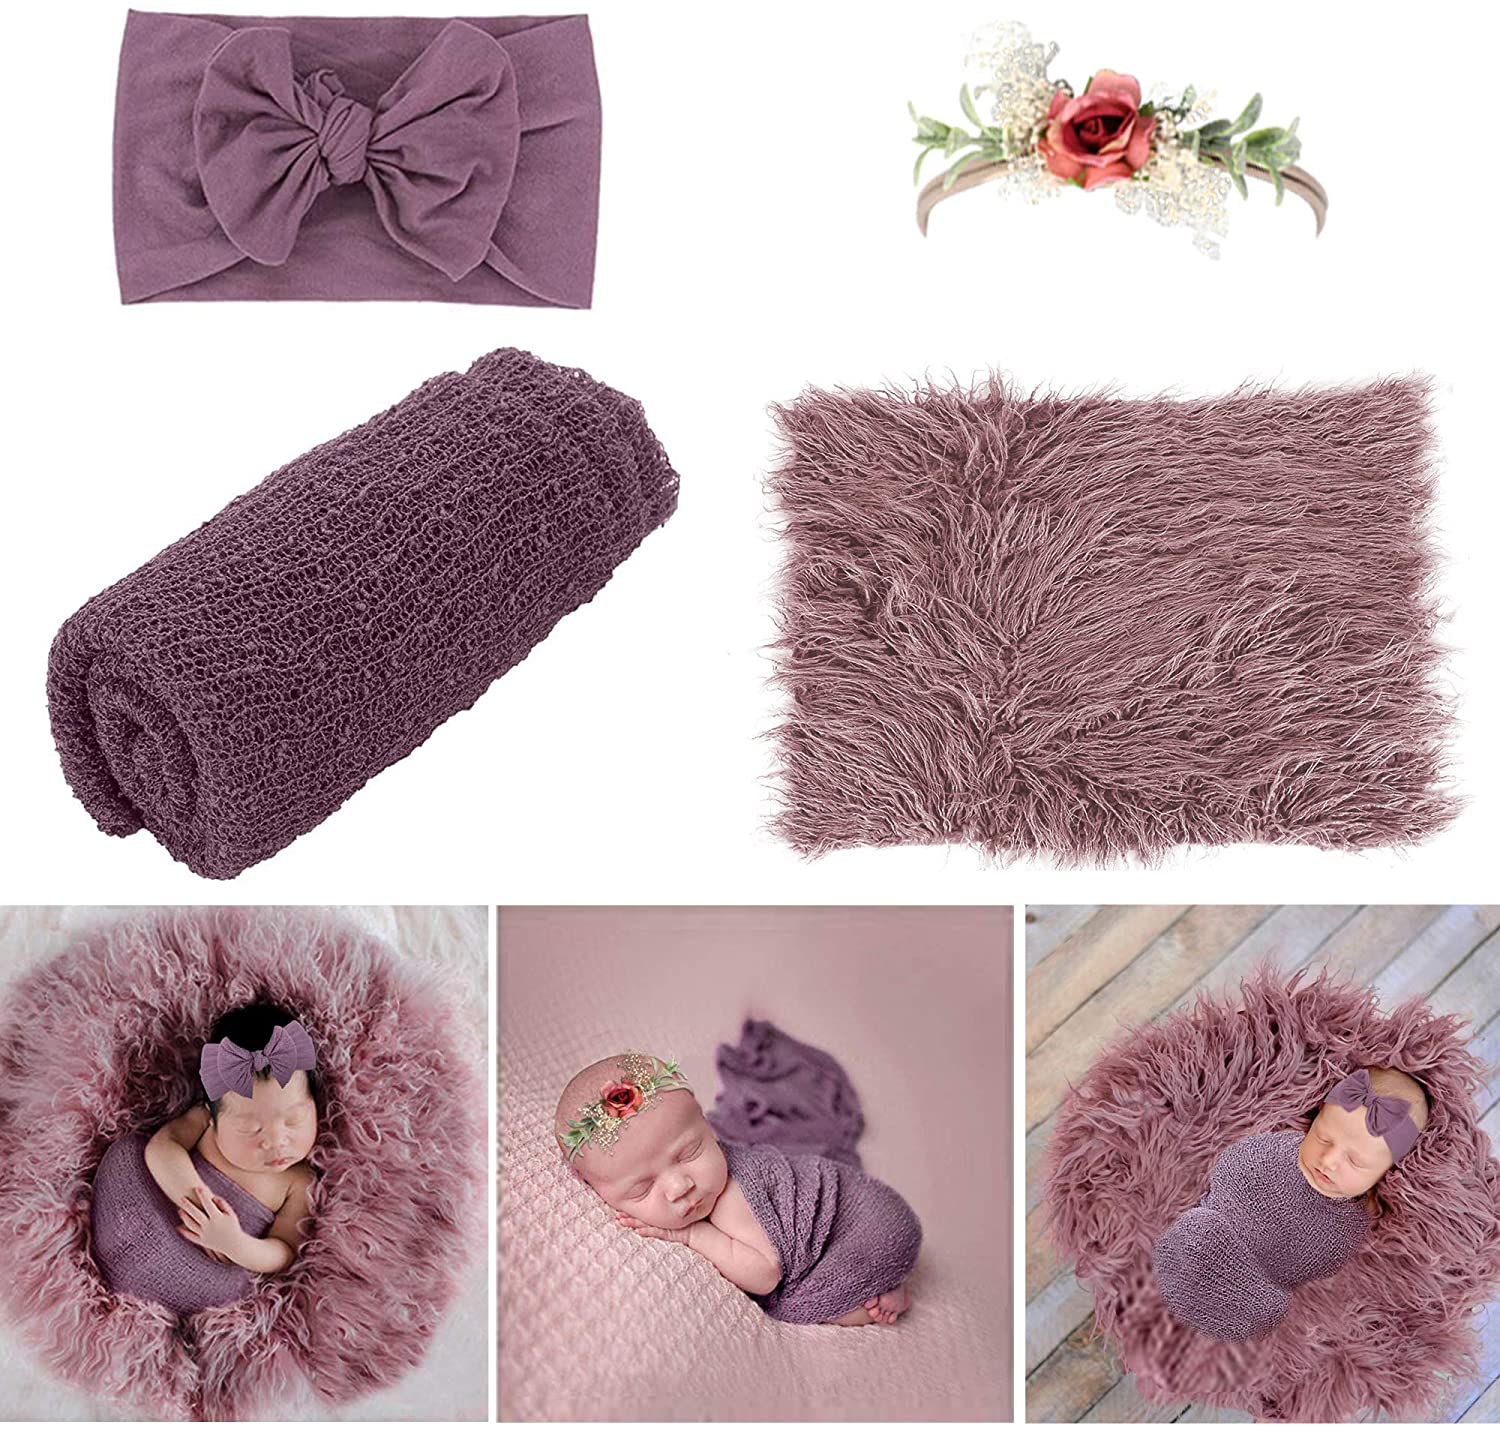 Newborn Photography Props - 4 PCS Baby Photo Props Long Ripple Wraps DIY Blanket with Headbands, Purple Toddler Wraps Photography Mat Set for Baby Boys and Girls